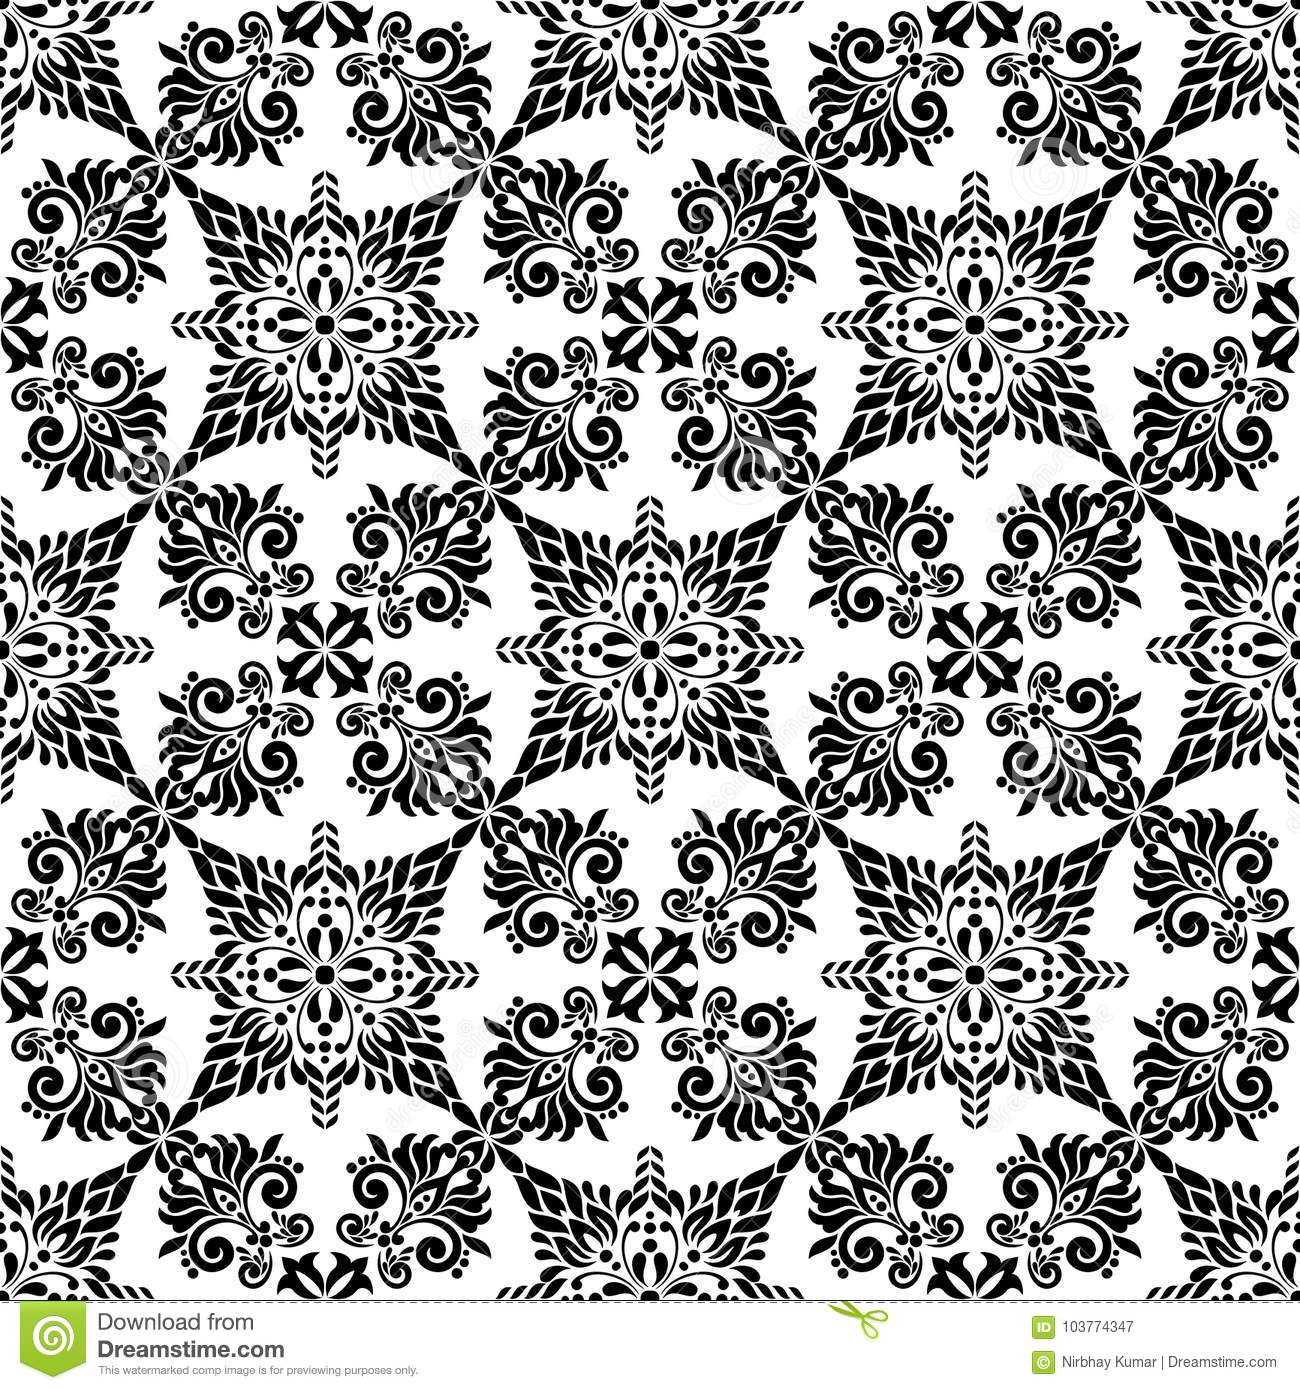 Vintage Flower Black And White Seamless Background Stock Vector